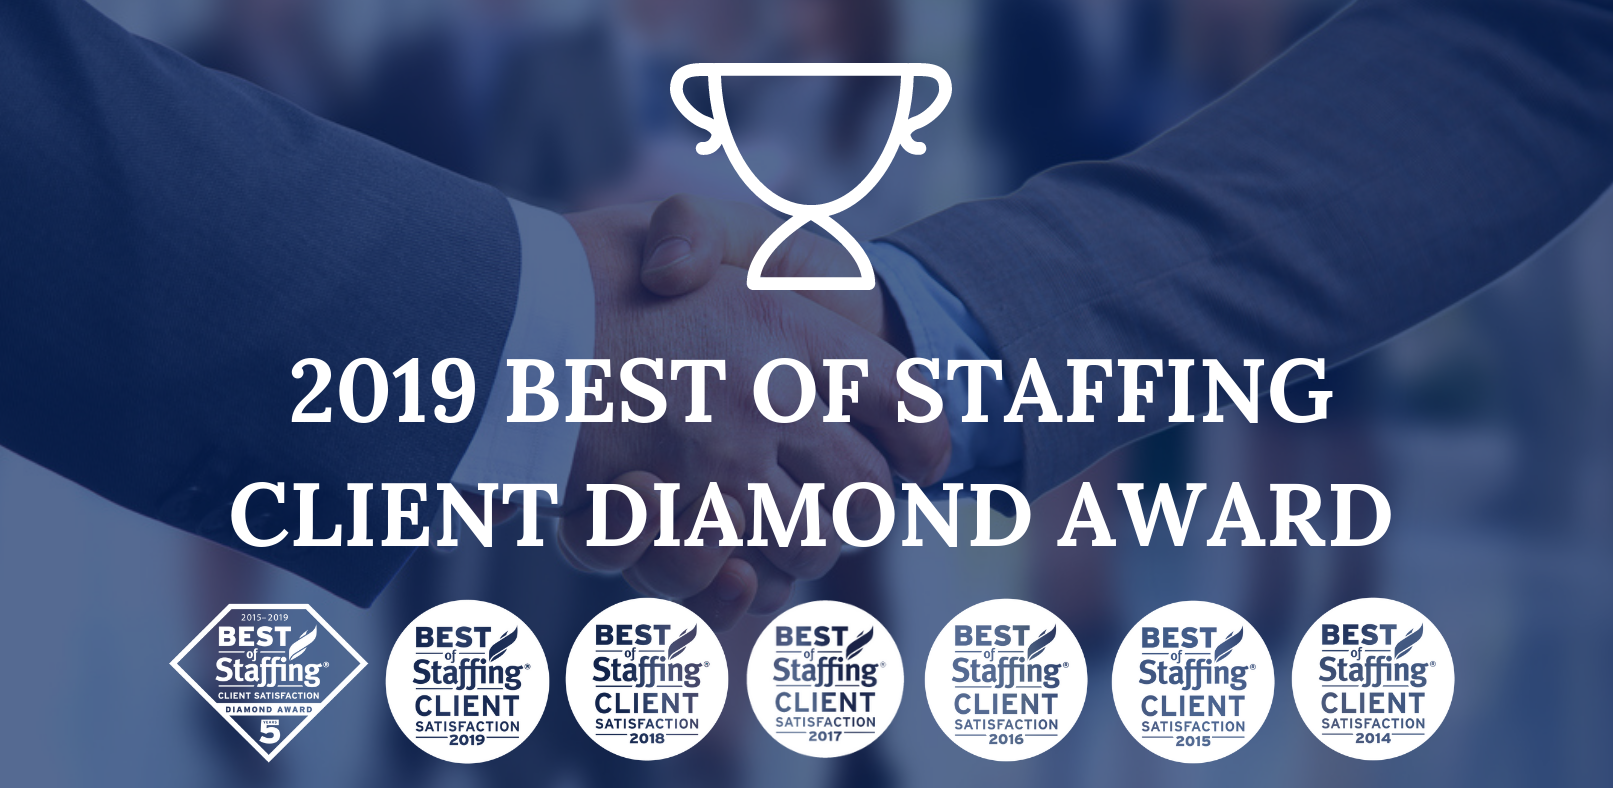 2019 Best of Staffing Client Diamond Award Winner